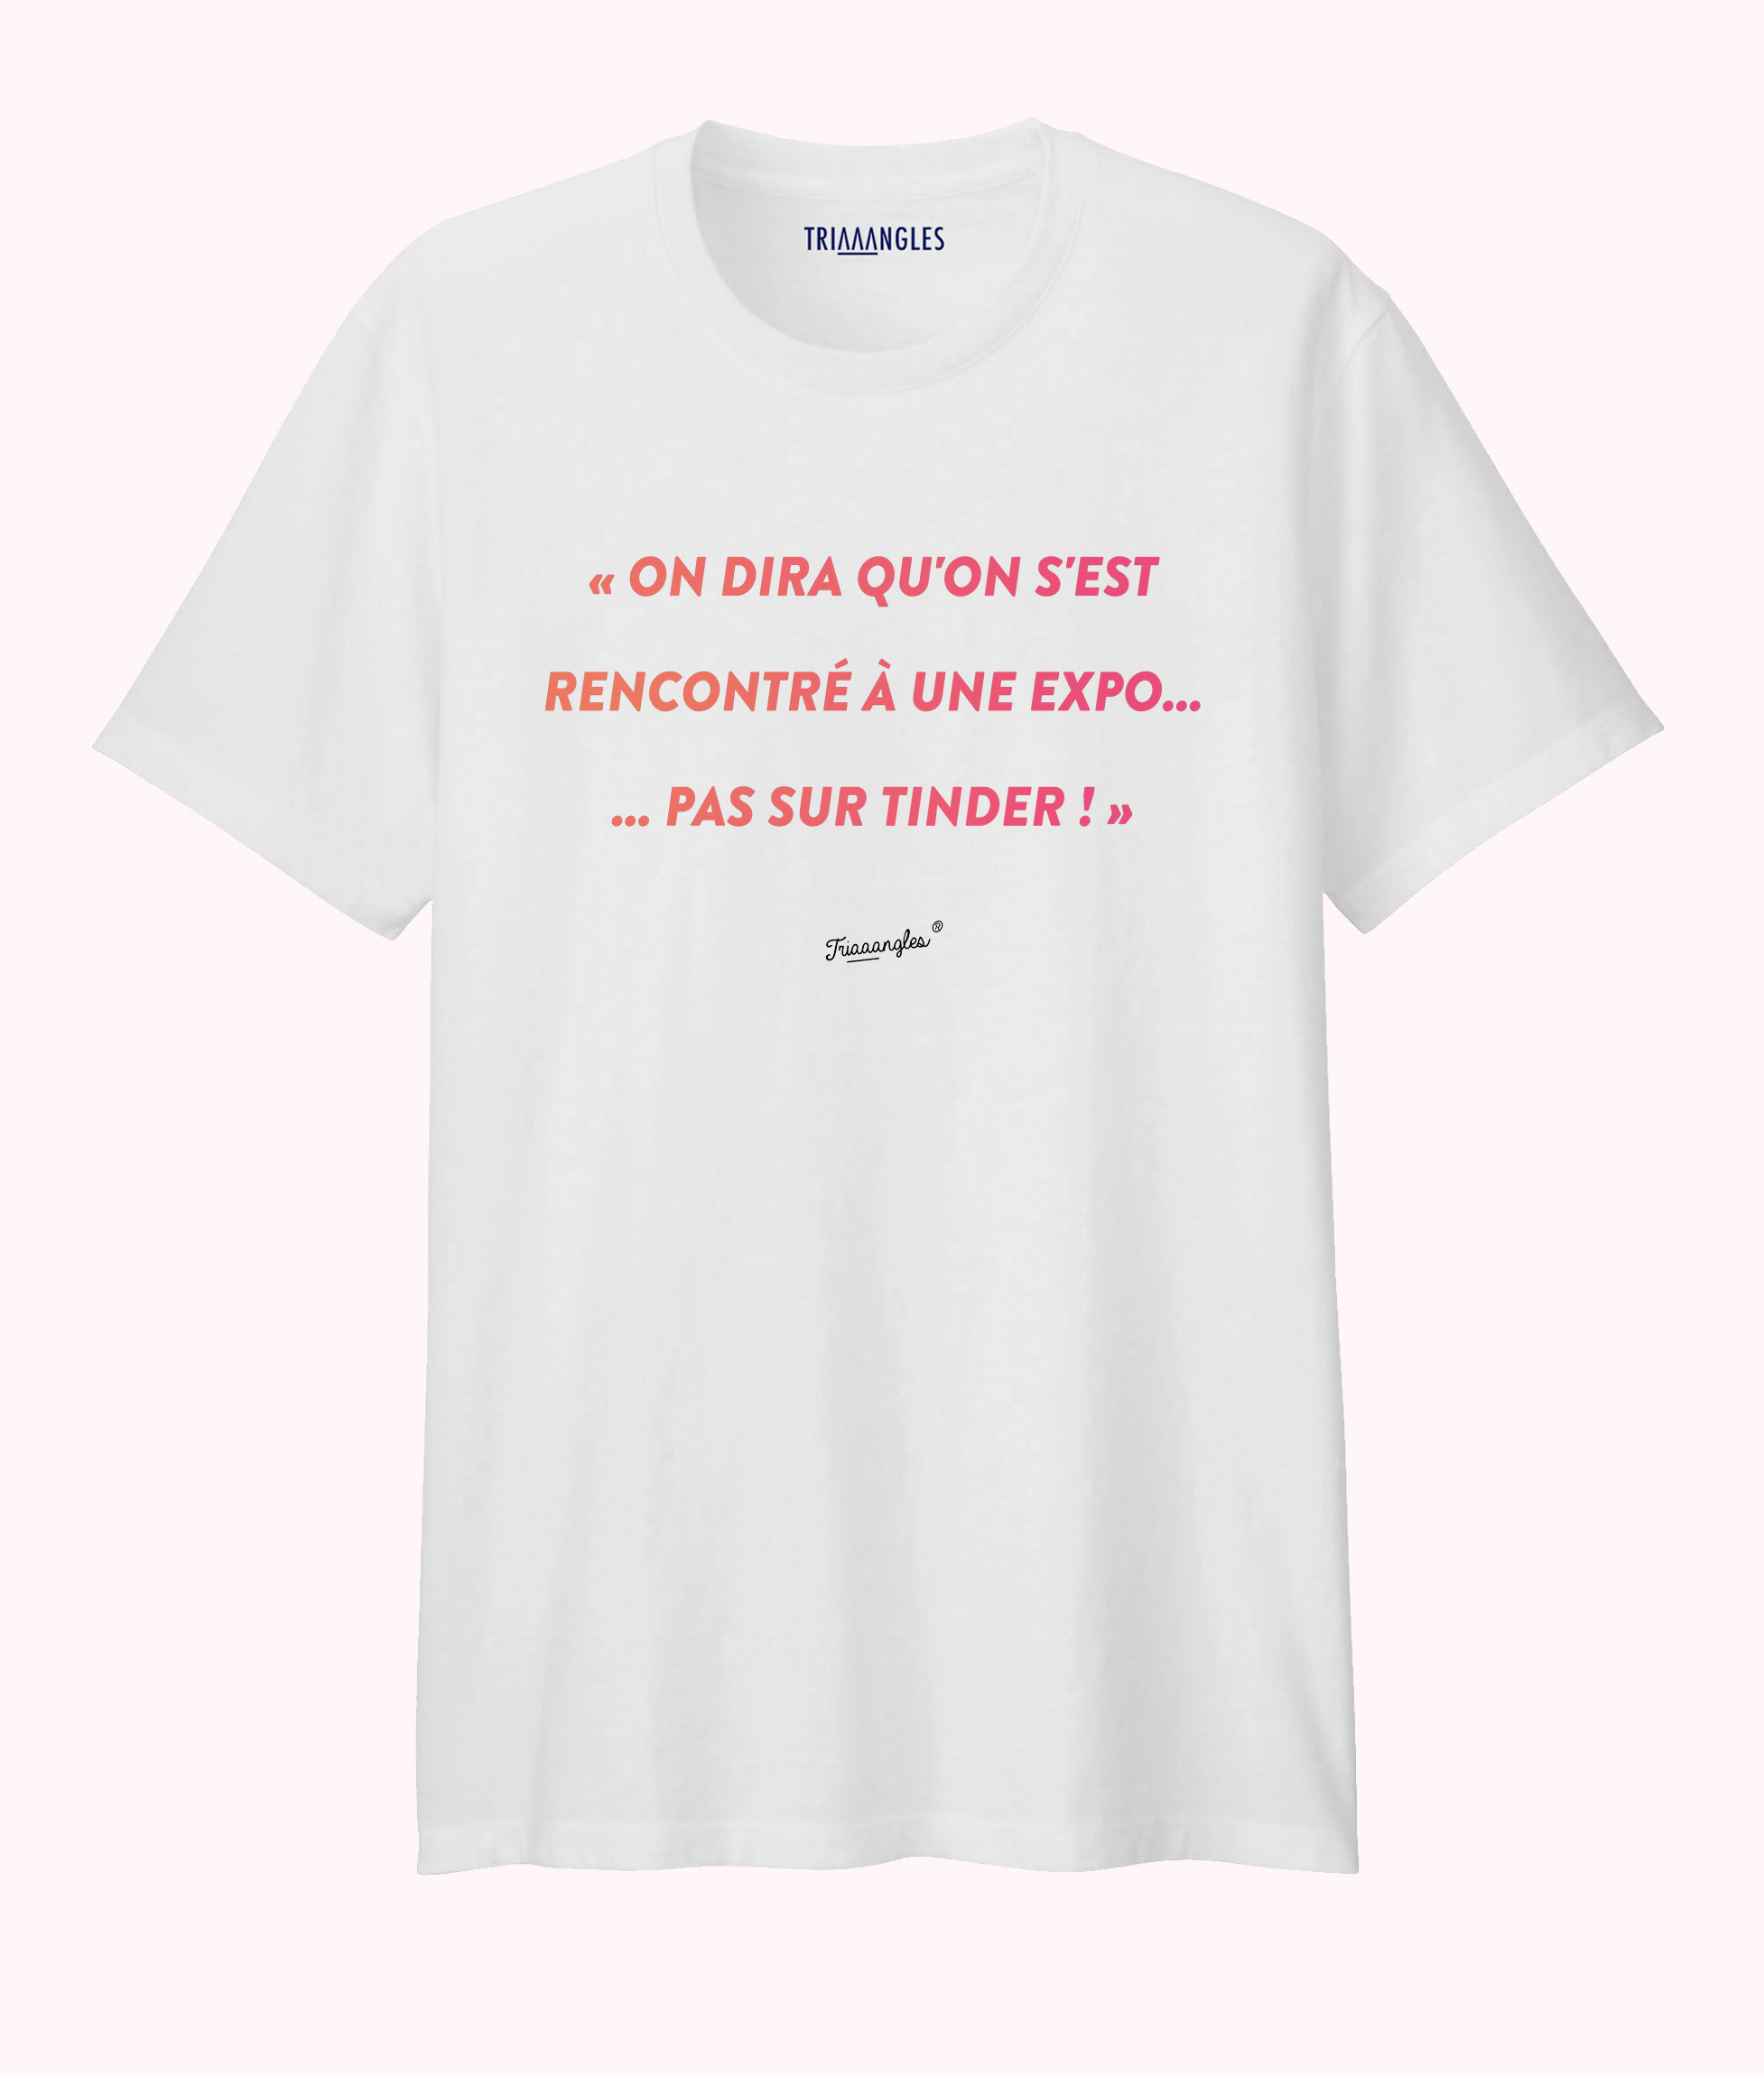 Tshirt blanc coupe homme Triaaangles - Tinder -29€90